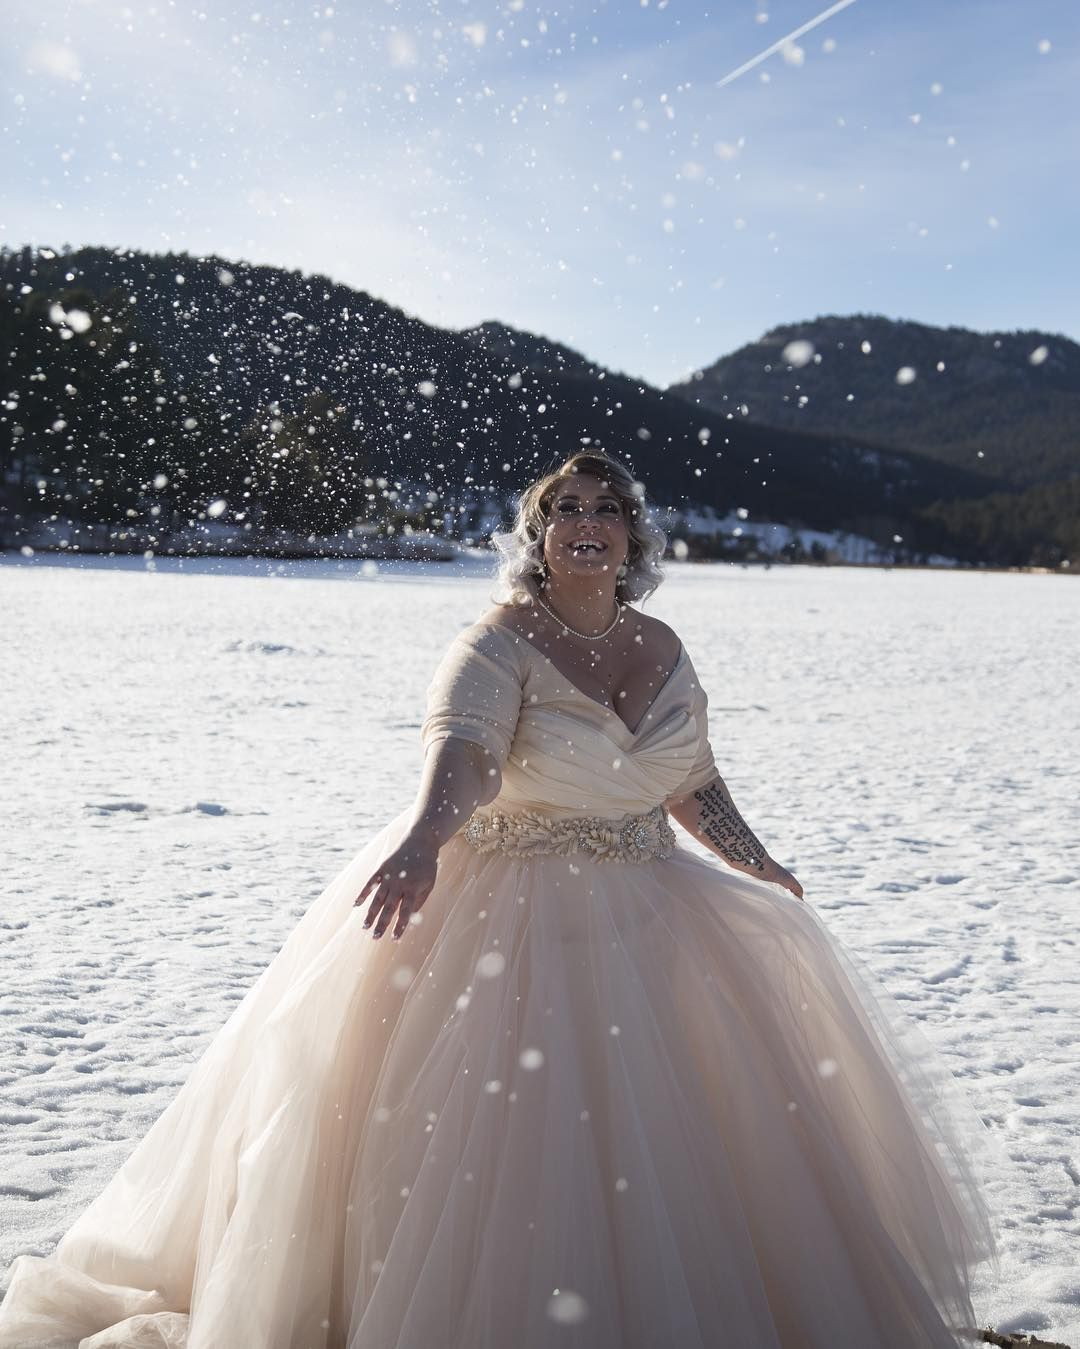 ❄️snowday❄️ #photography @nicole_marcelli  #HMUA @makeup_withmel  #photoassignment @savanaray  #onemonth #onemonthanniversary #married #love #snow #colorado #mountains #lazaro @lazarobridal #kleinfeld #meow #evergreen #snowday #snowballfight #husband #bride #bridal #winter #winterwedding #winterbride #tattoo #photography #curvy #curvybride #honormycurves #hair #makeup #tiedtheknotinlazaro #princess